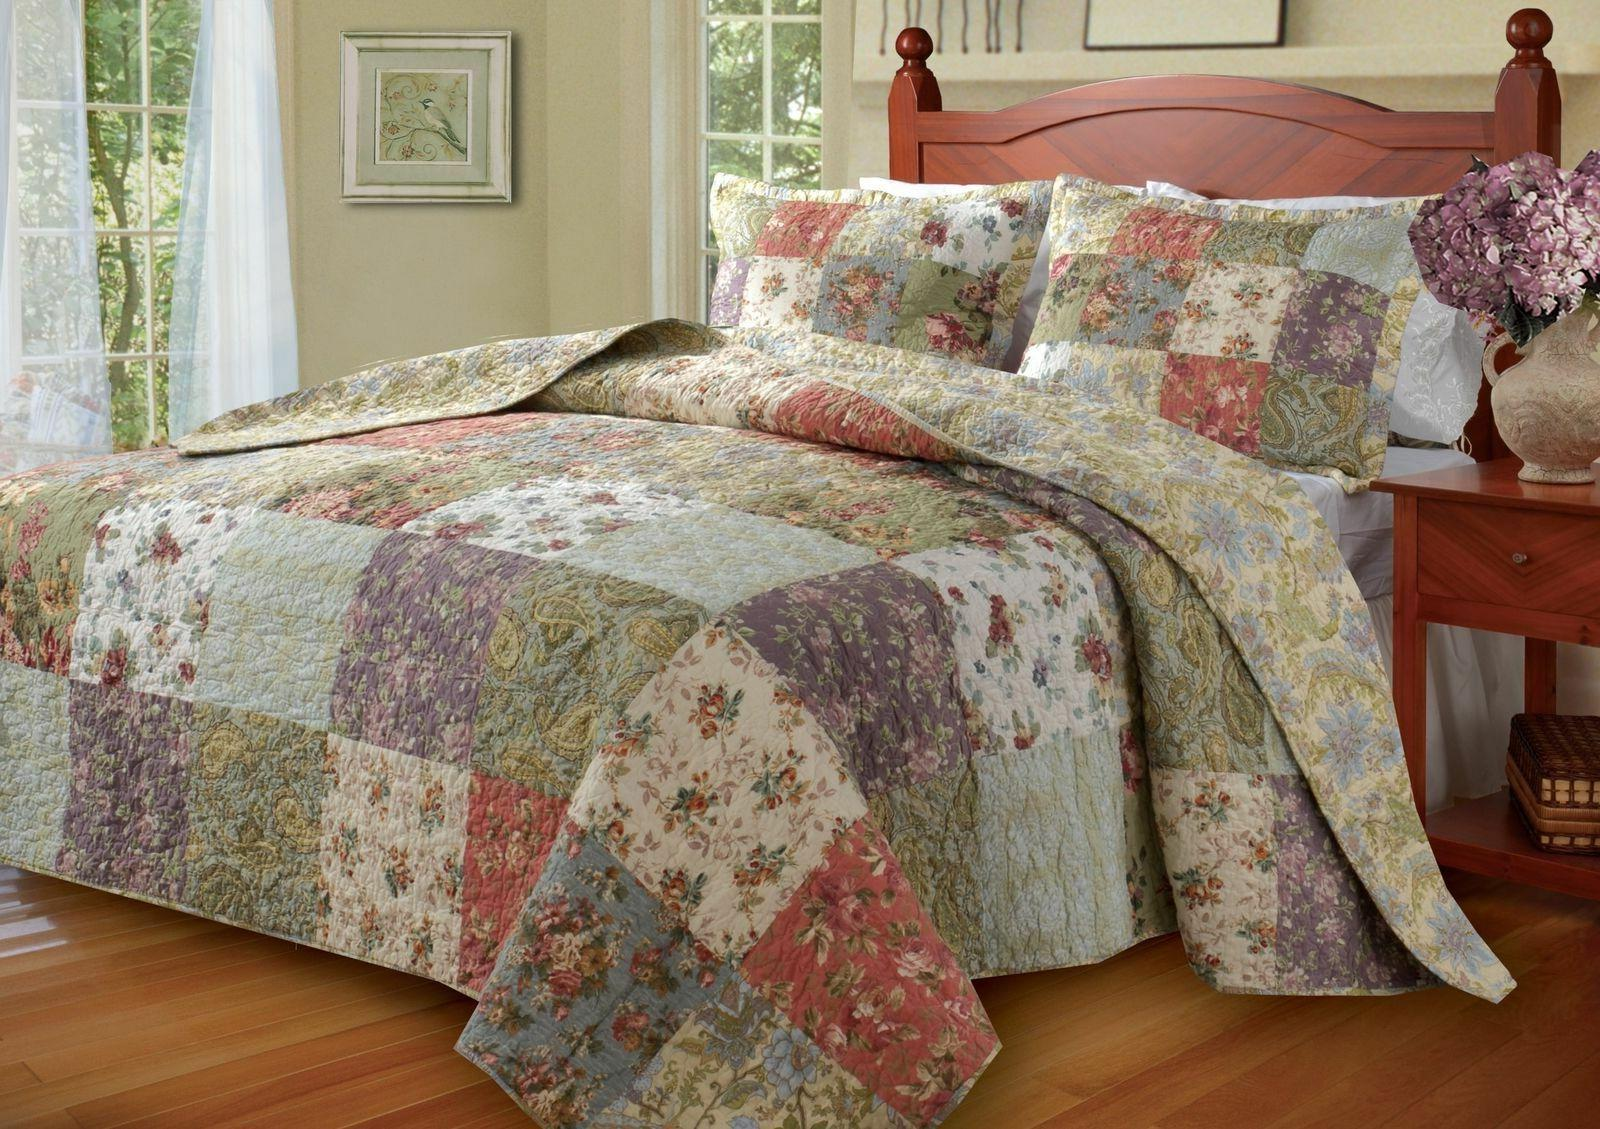 Greenland Home Blooming King Quilt